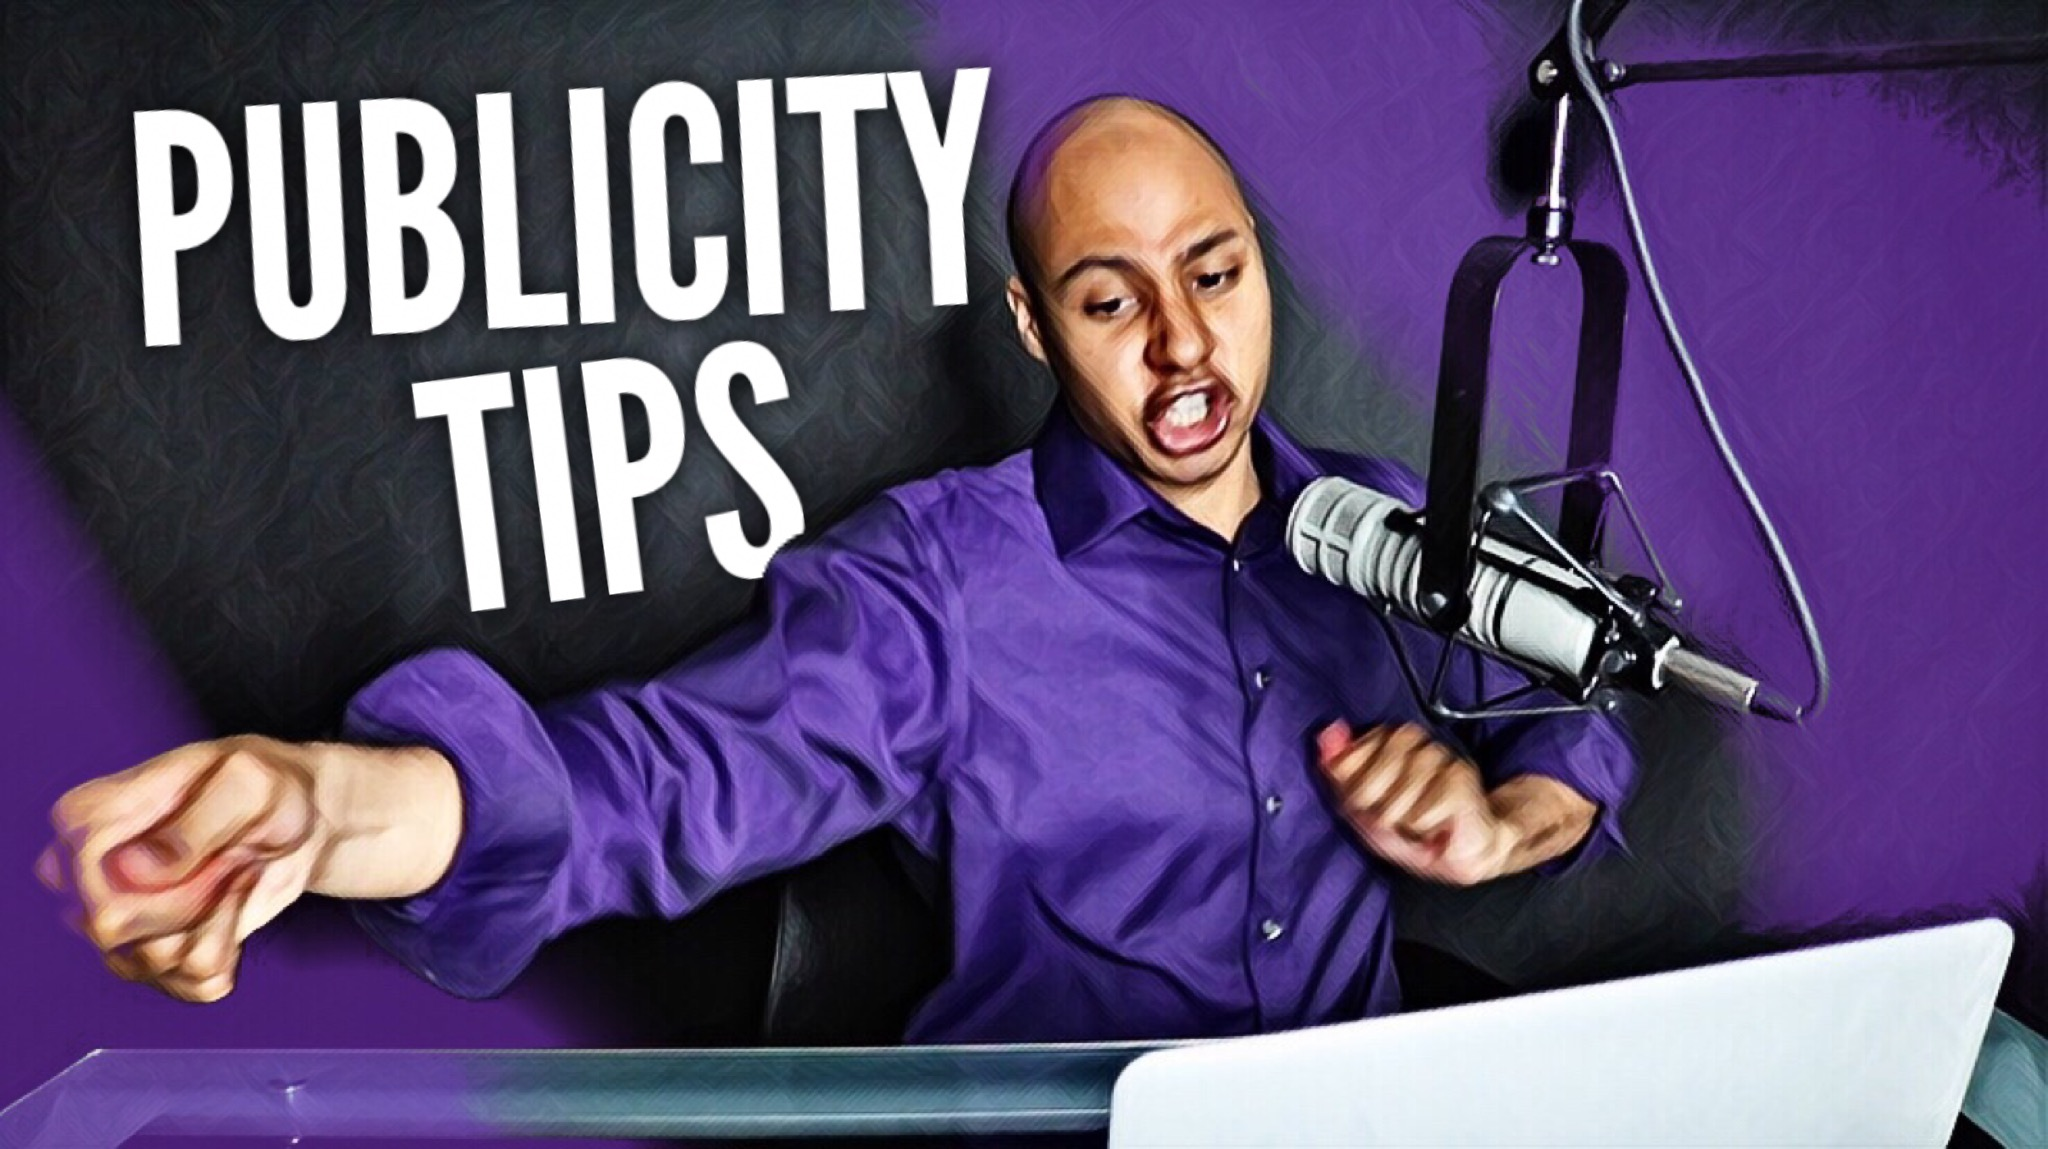 Publicity Tips for when you get on TV